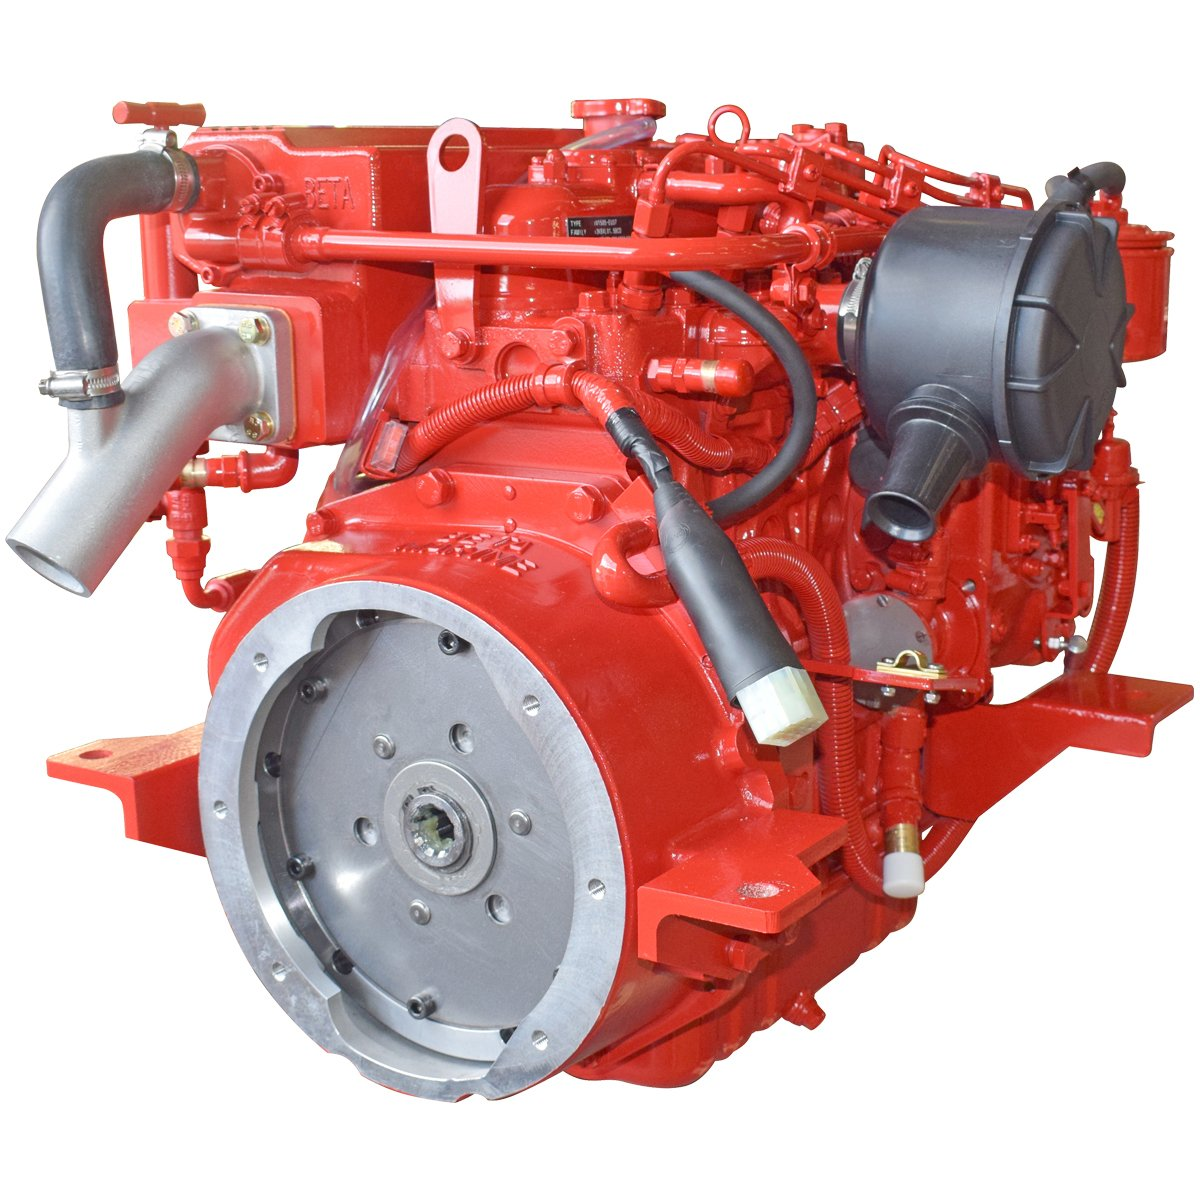 Beta Marine USA - marine diesel saildrive engines - Beta 35SD heat exchanger saildrive engine